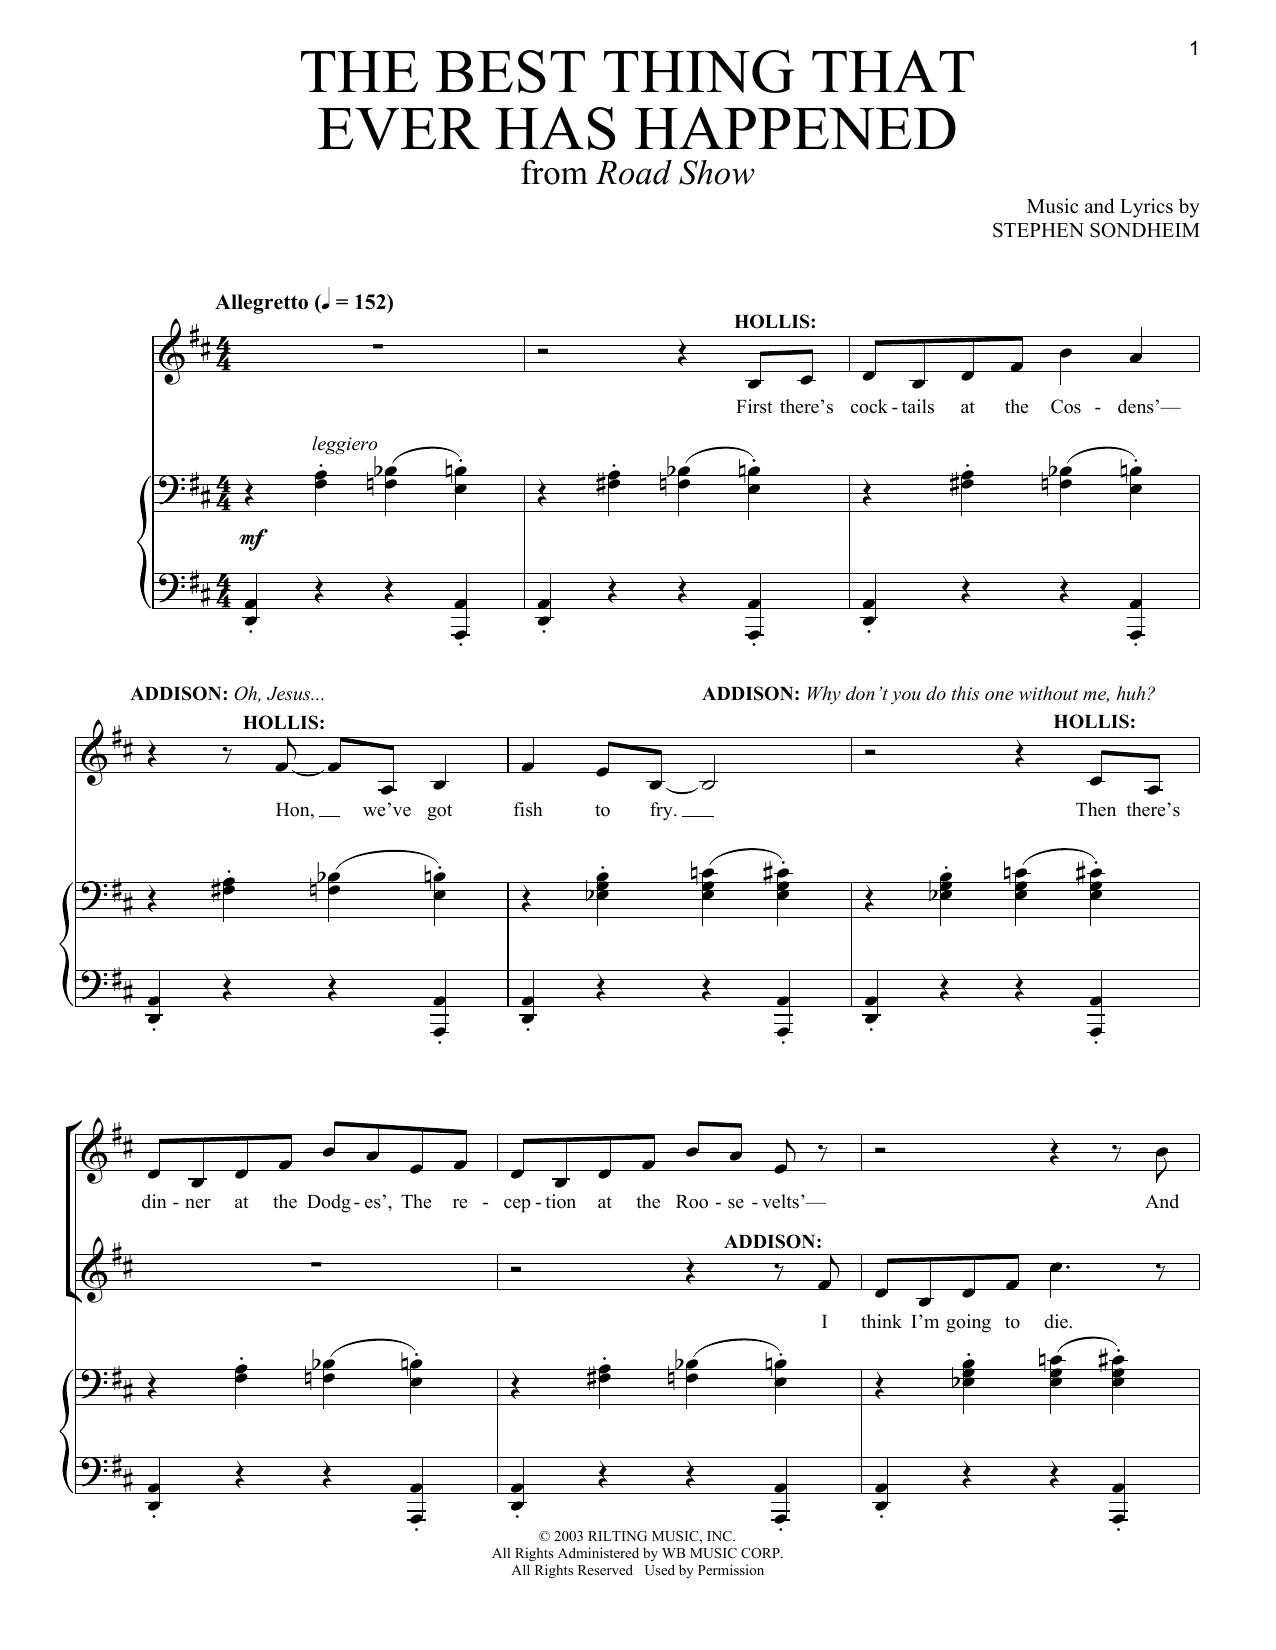 Stephen Sondheim The Best Thing That Ever Has Happened sheet music notes and chords. Download Printable PDF.